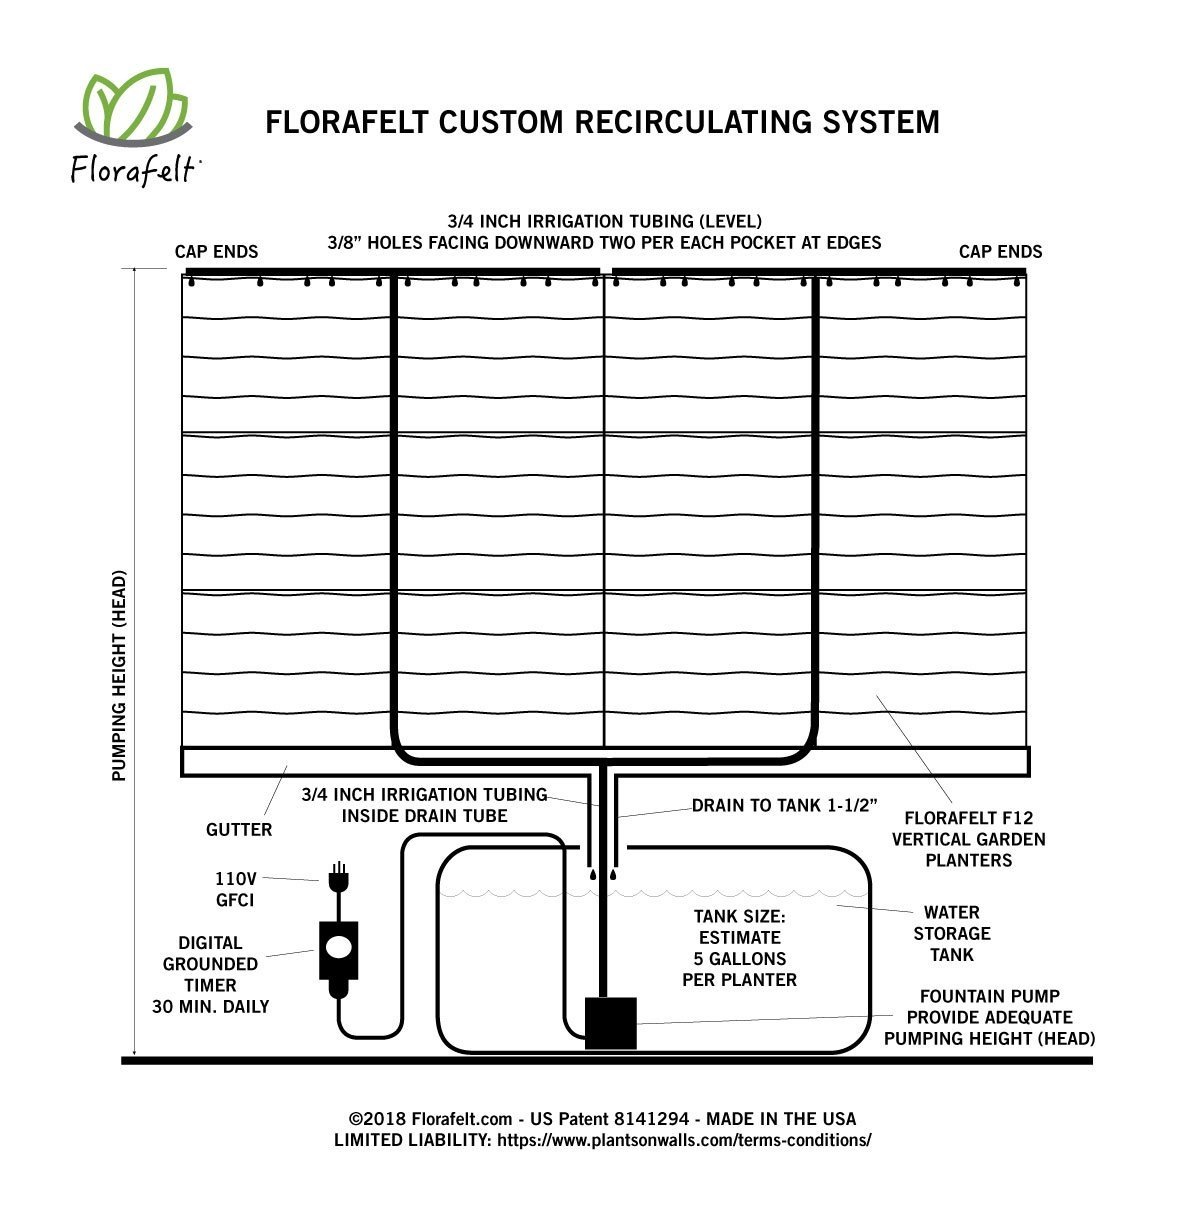 Florafelt Custom Recirculating System Design